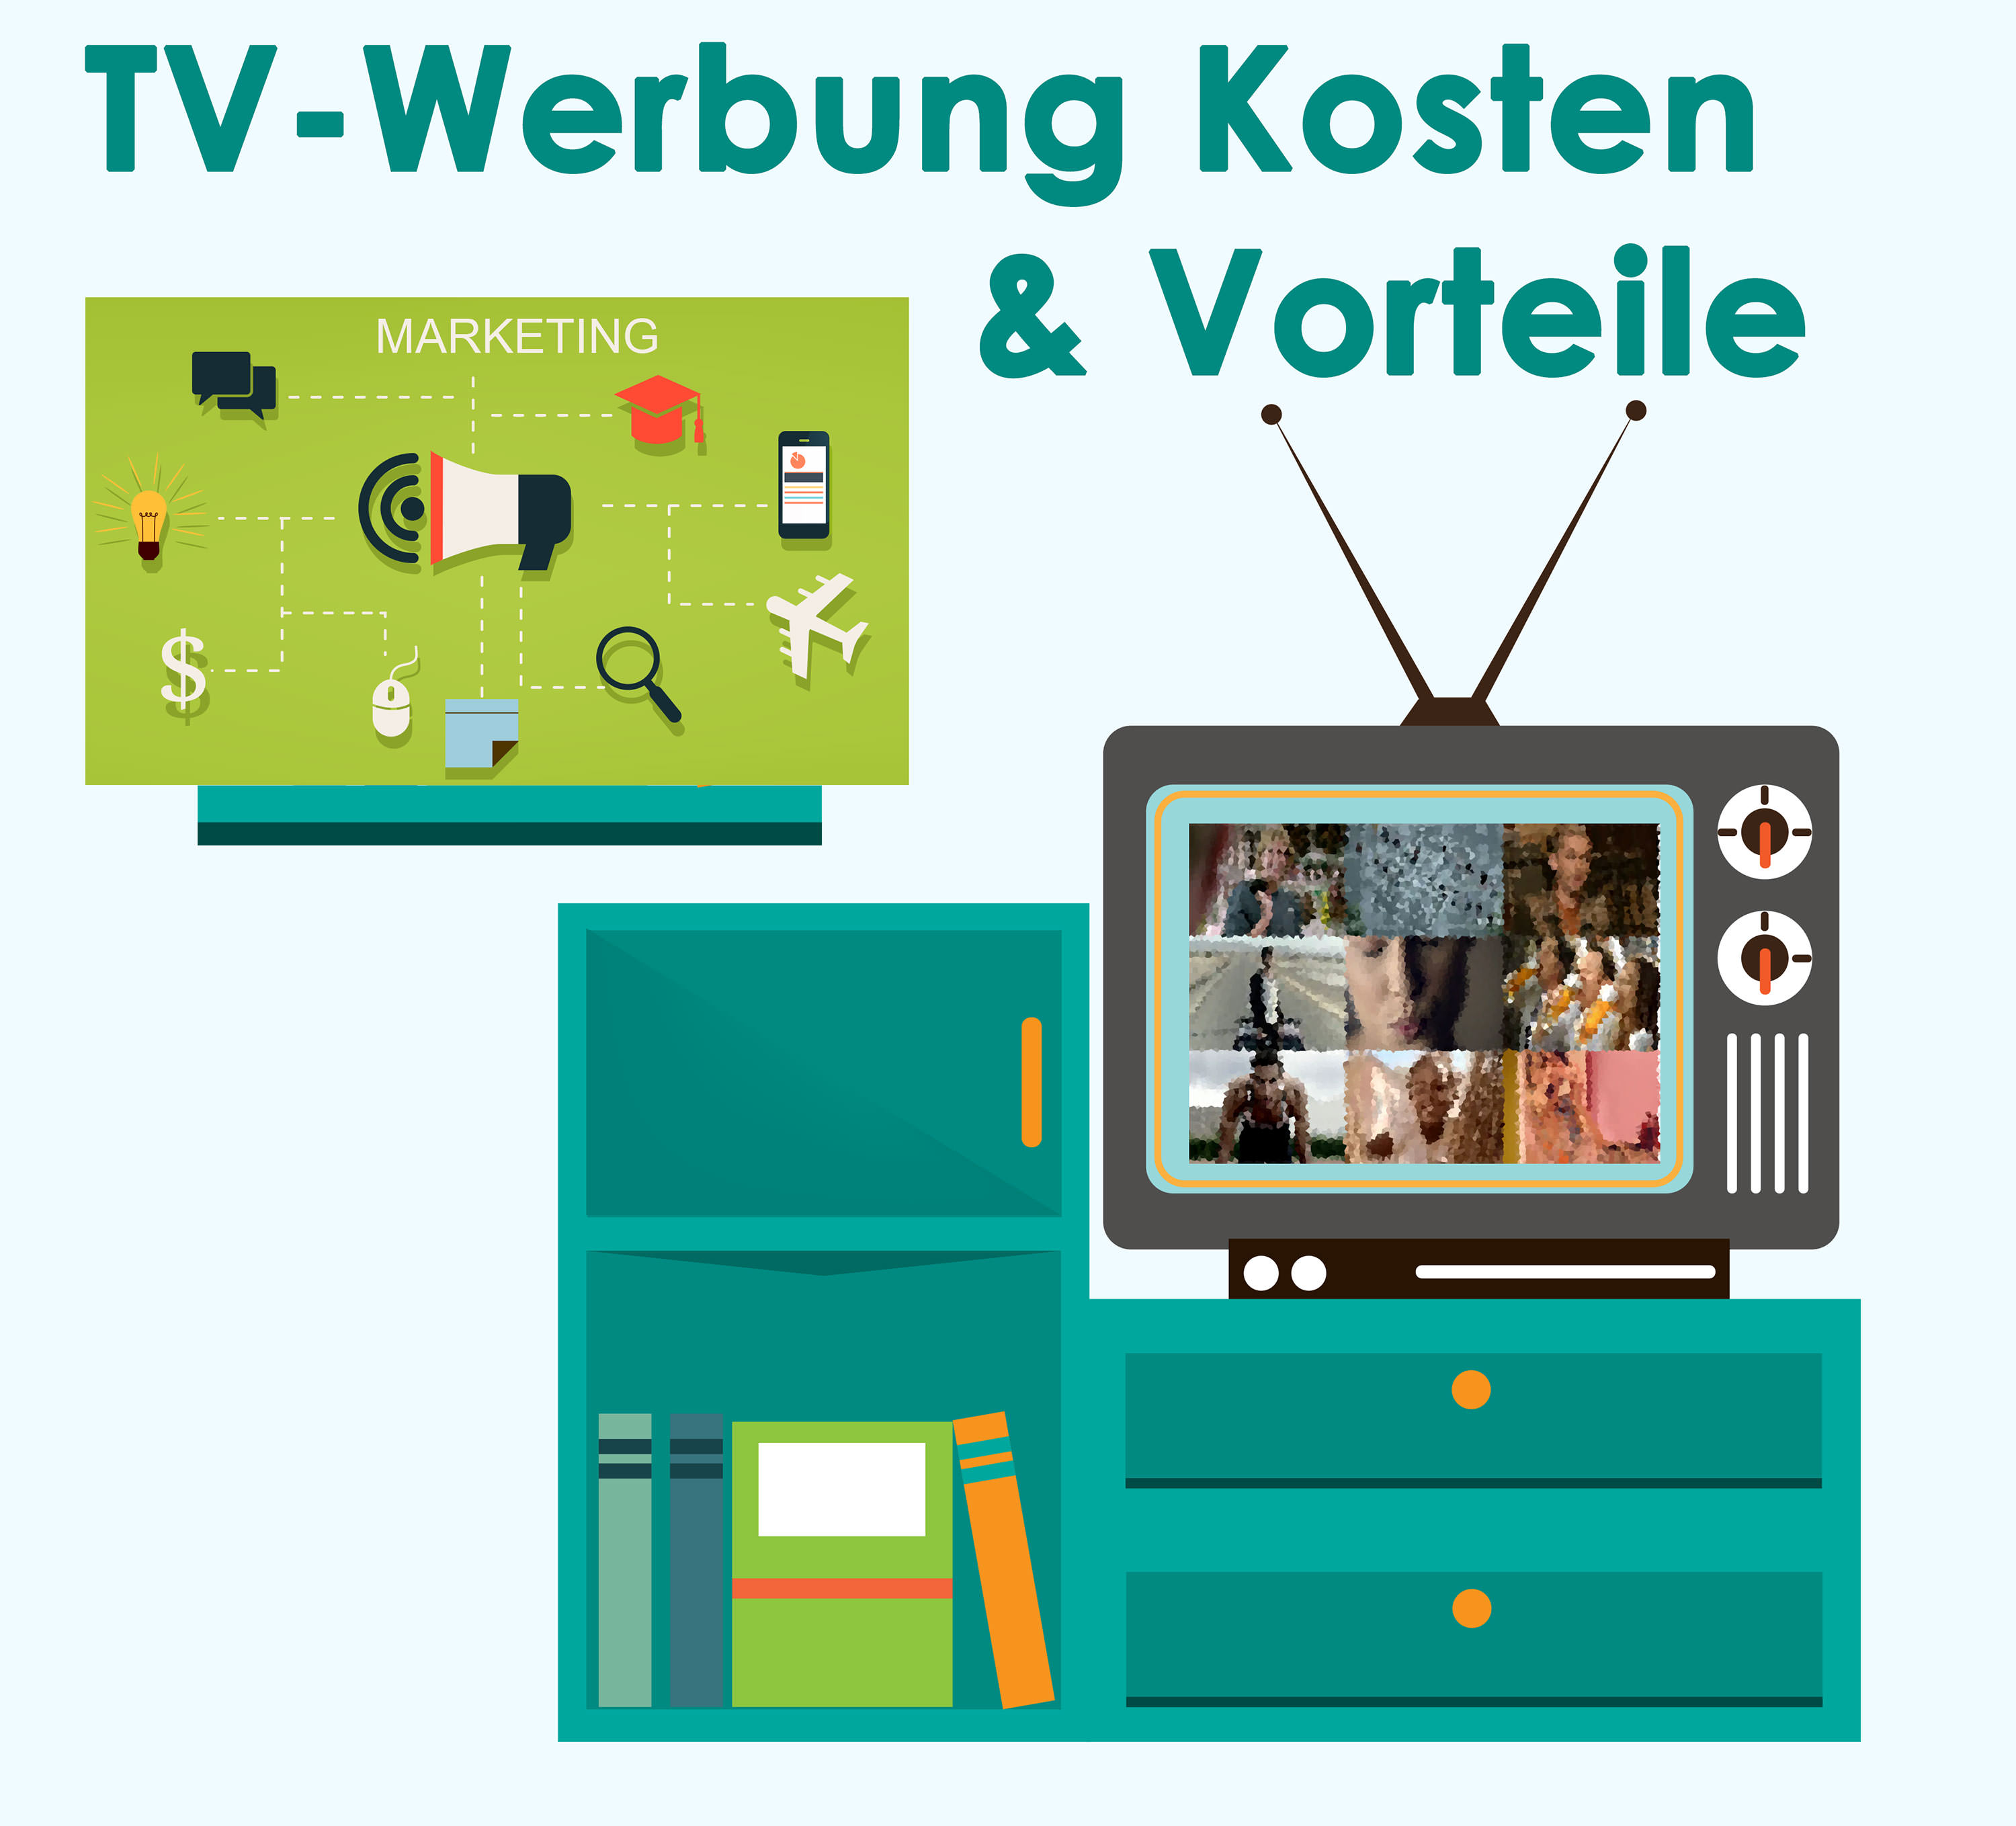 tv werbung kosten und vorteile online. Black Bedroom Furniture Sets. Home Design Ideas